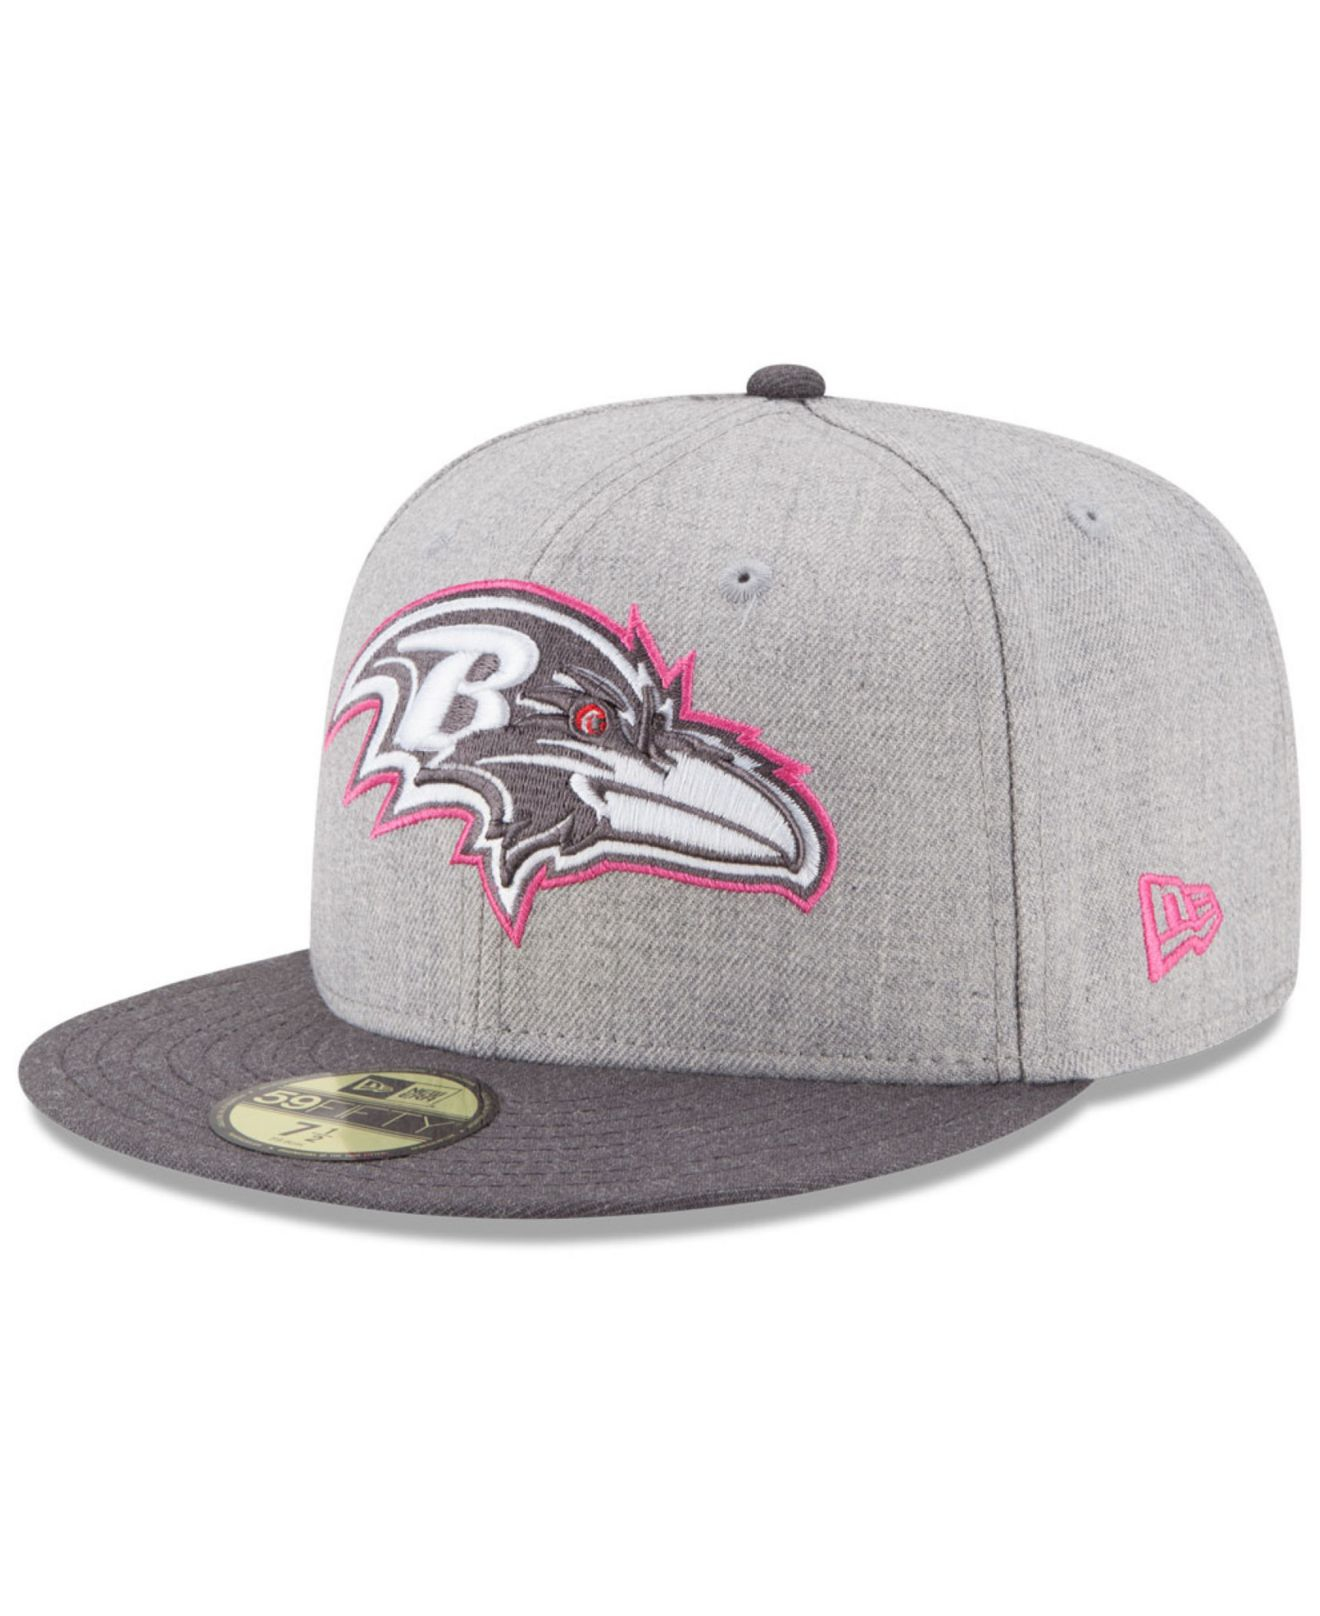 ... 39thirty hat grey large 1d38d c44dc  norway lyst ktz baltimore ravens breast  cancer awareness 59fifty cap in a4751 30217 5143c2f74009